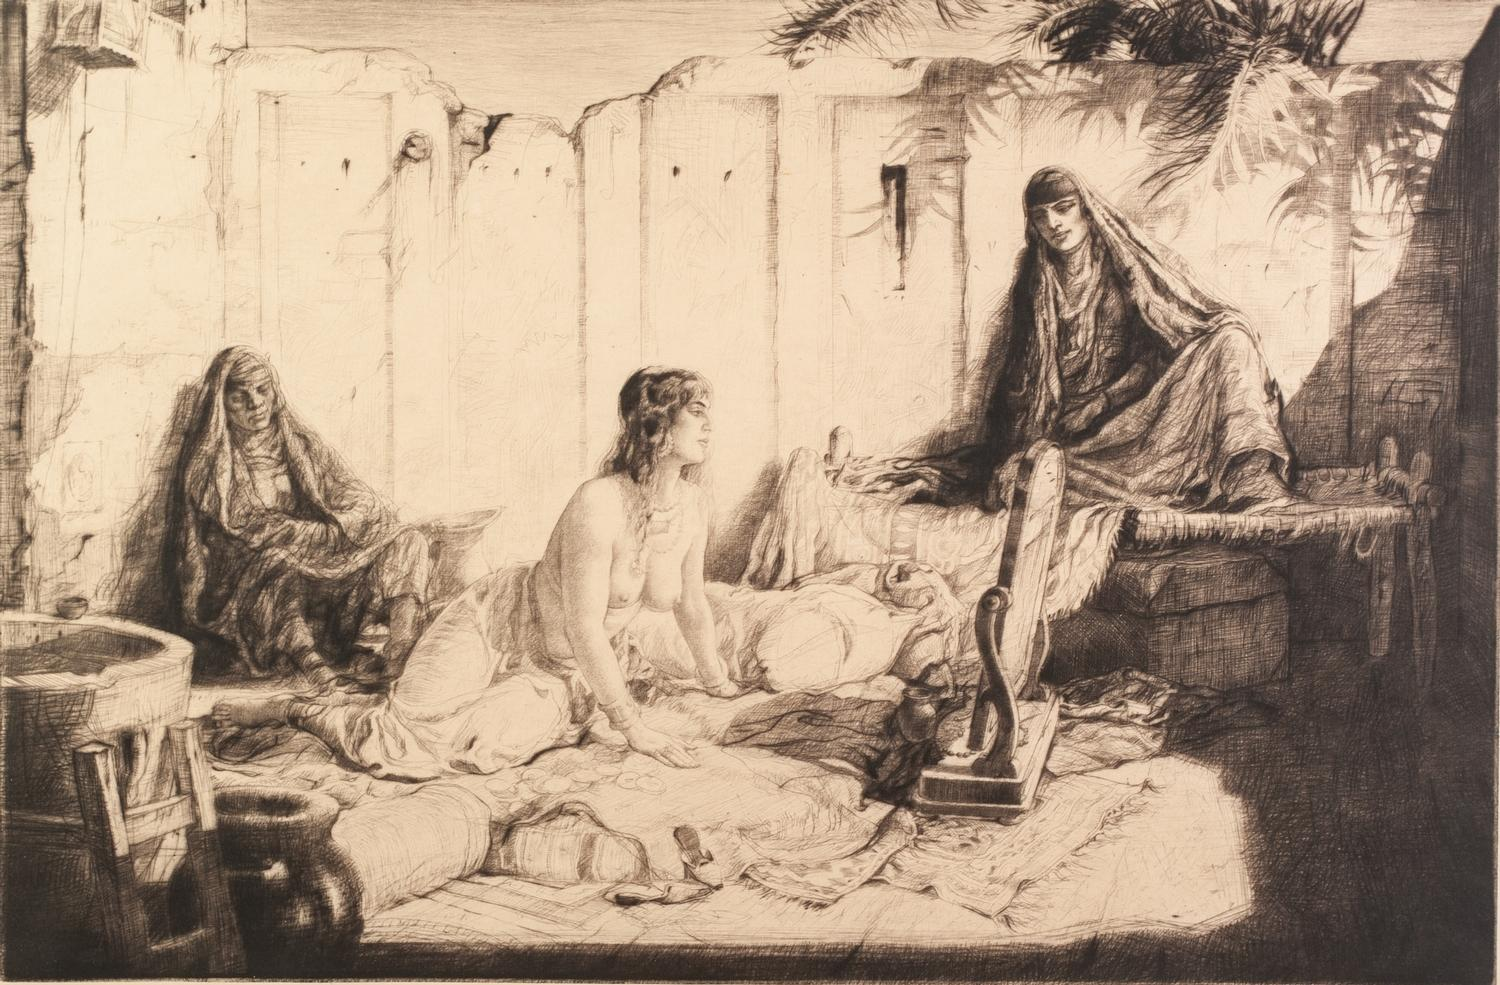 Lot 323 - CHARLES WILLIAM CAIN ARTIST SIGNED DRY POINT ETCHING 'On a Baghdad Roof' Signed in pencil and